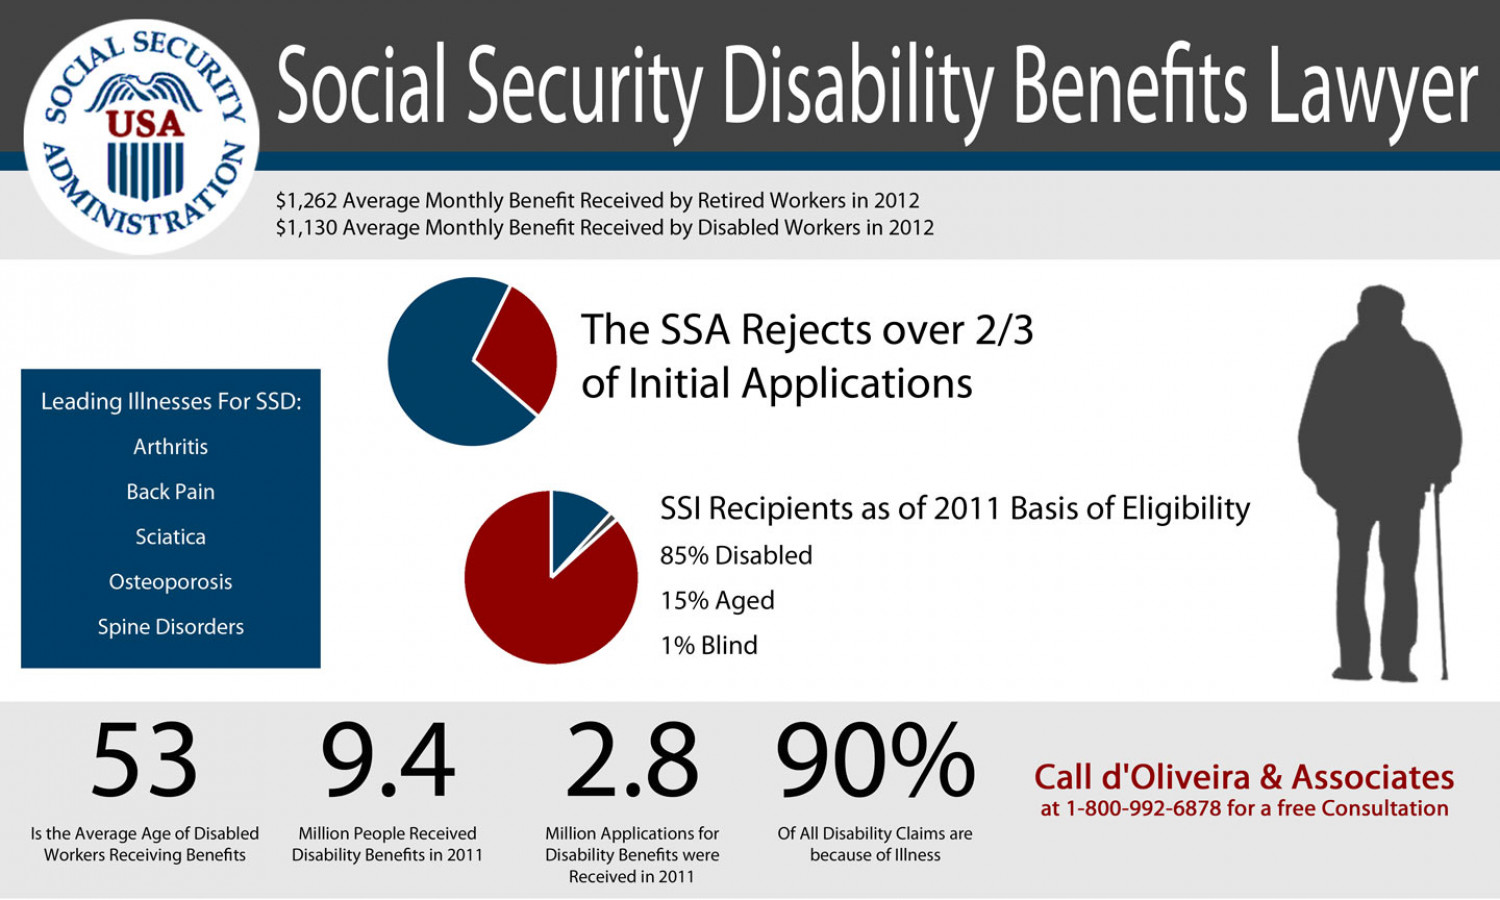 Social Security Disability Benefits Lawyer Infographic